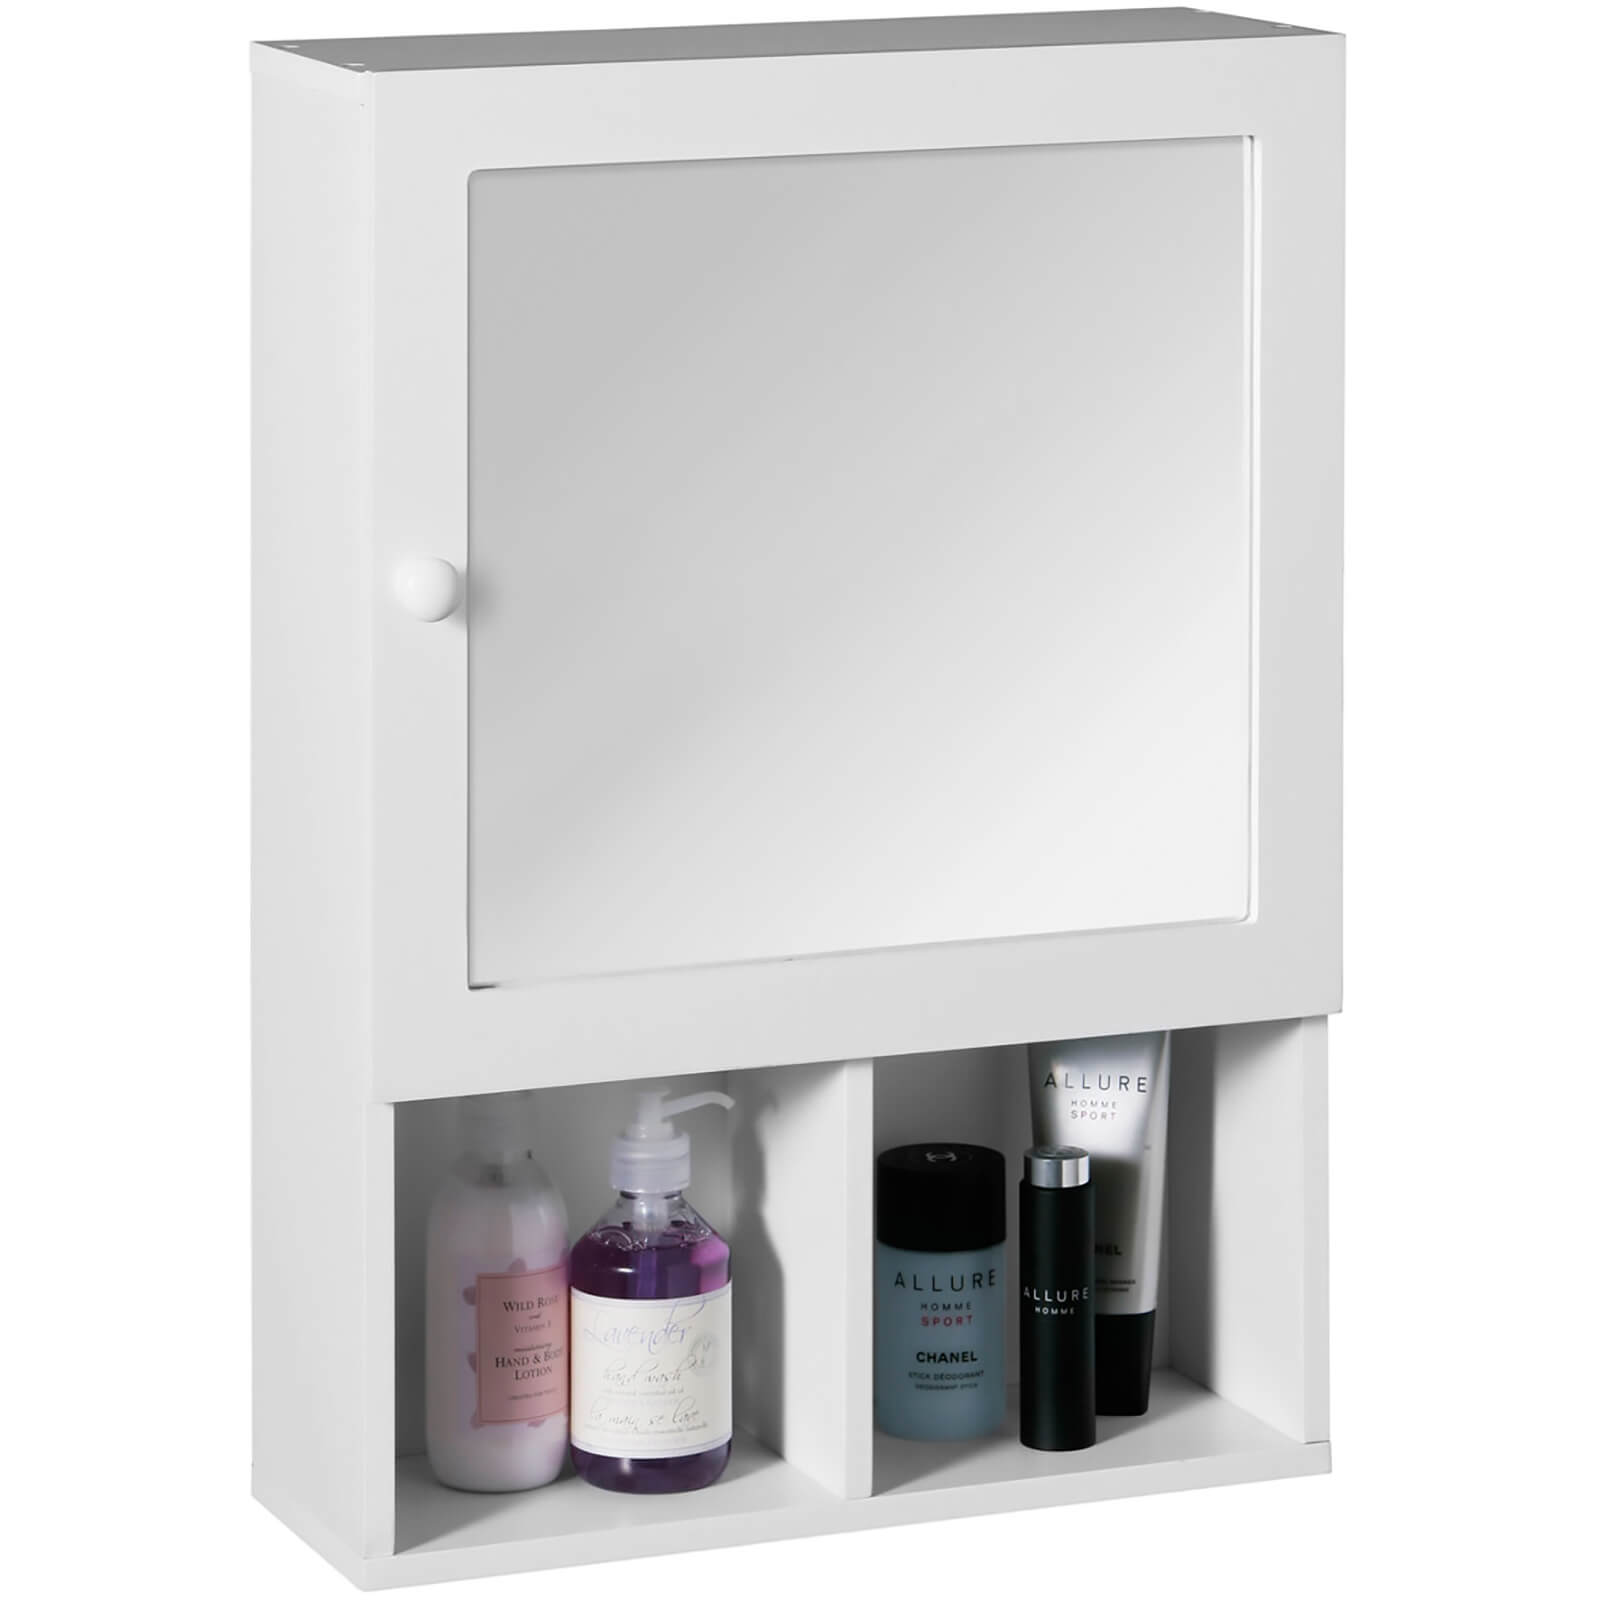 Bathroom Mirrored Cabinet - White Wood